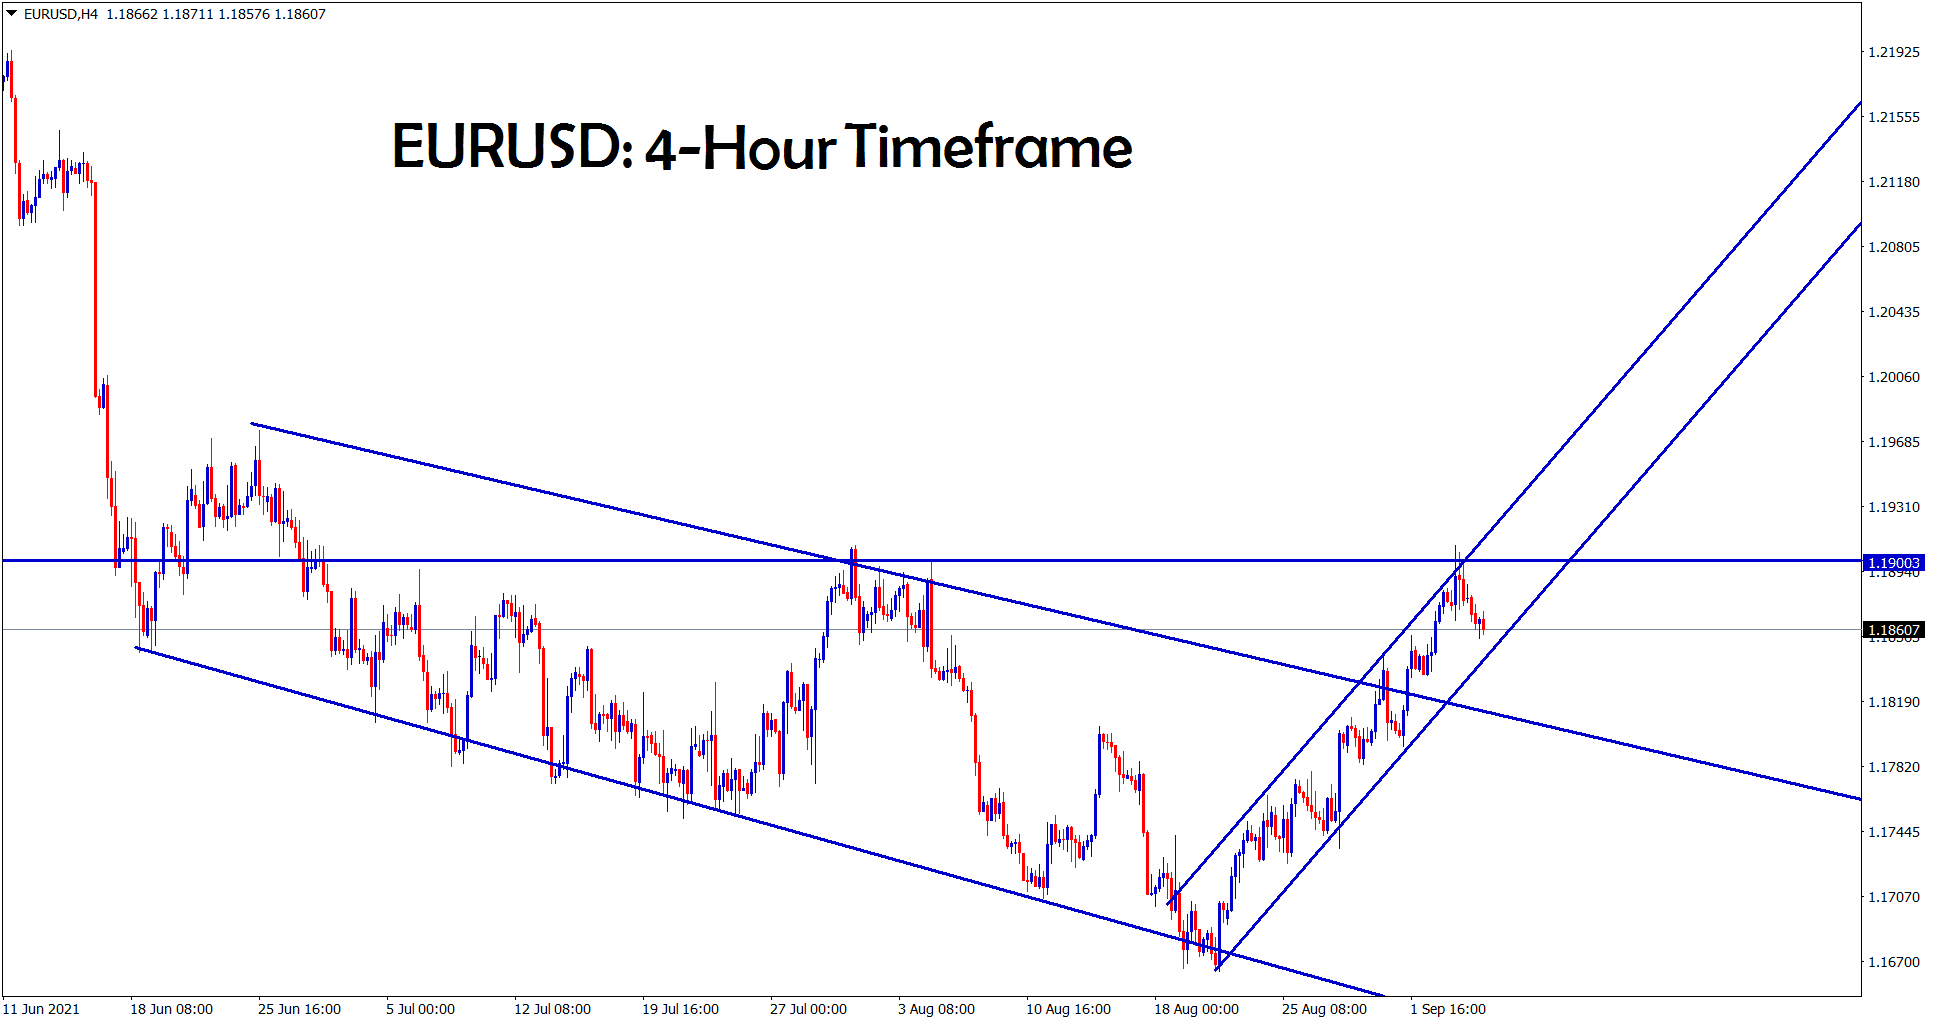 EURUSD is moving in a narrow ascending channel and making a correction from the horizontal resistance area